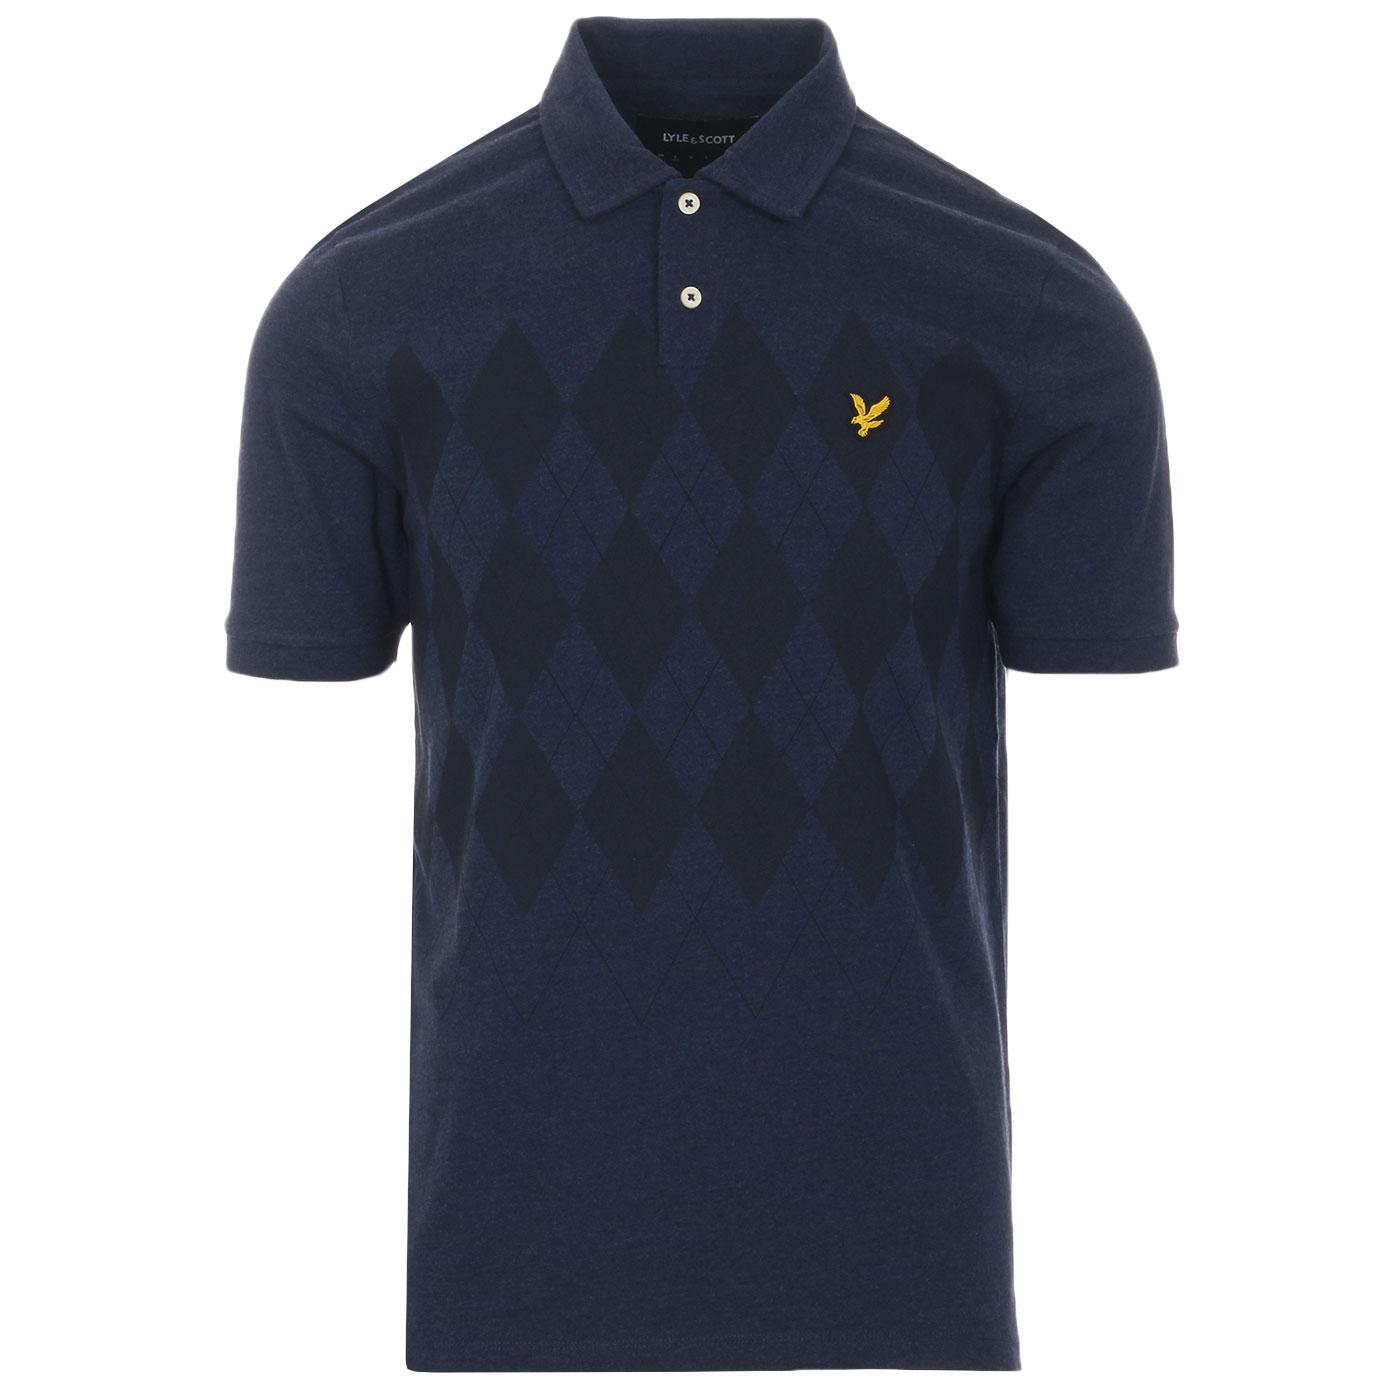 LYLE & SCOTT Retro Mod Argyle Print Polo Top NAVY